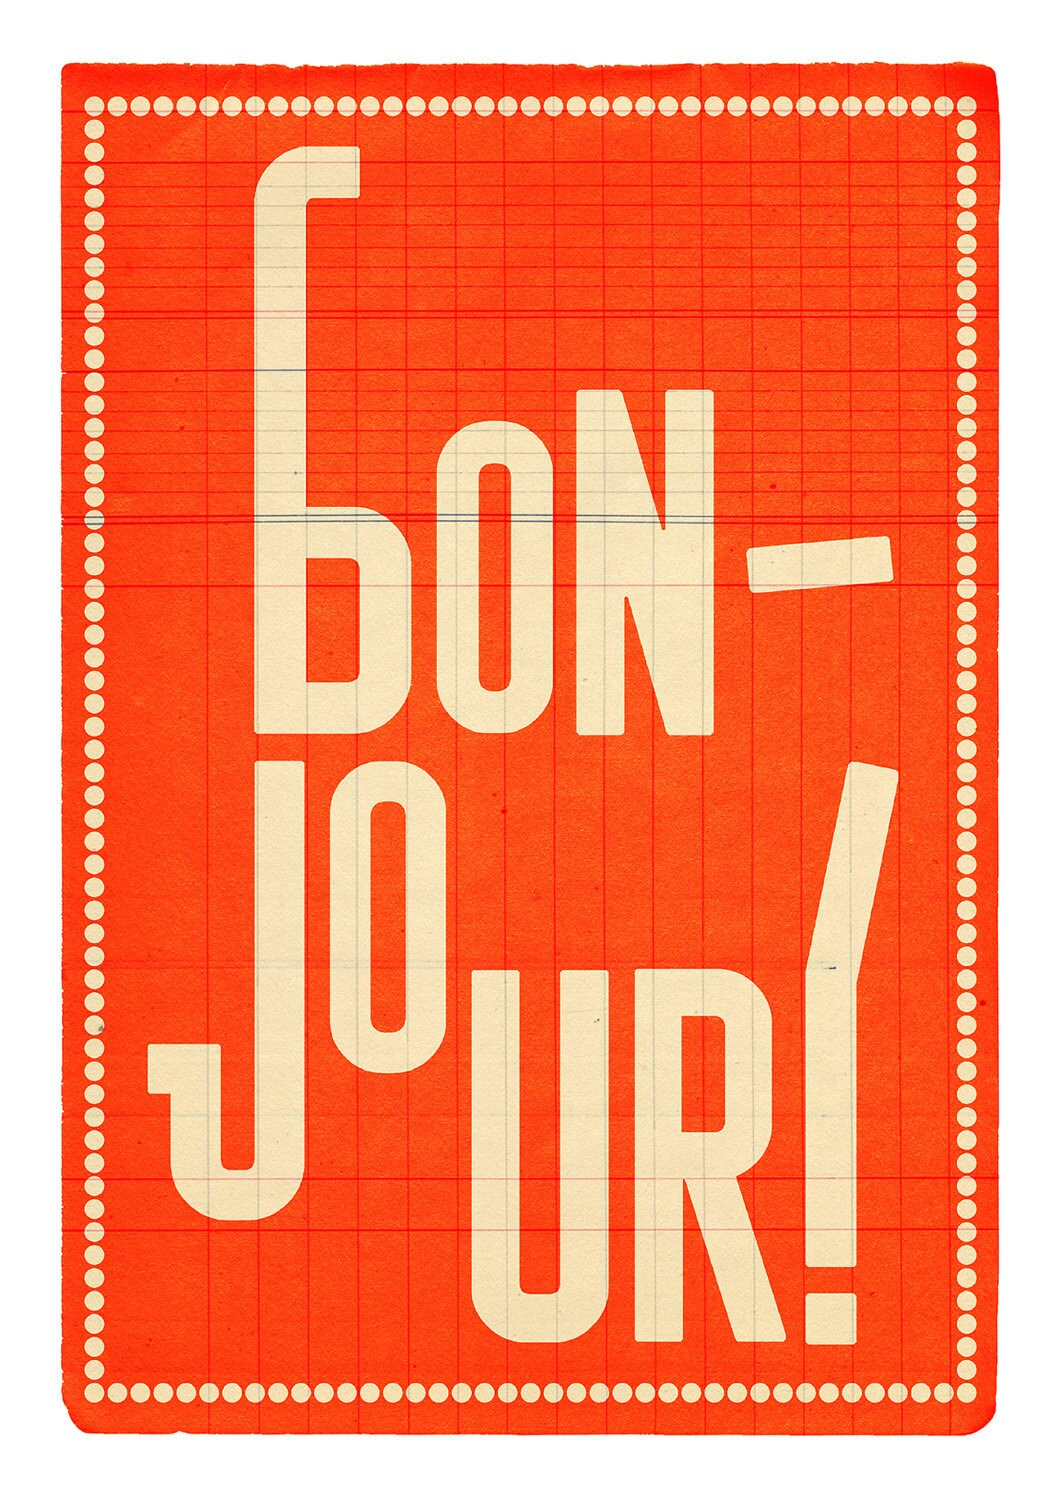 Bonjour (orange) . Illustration print 8.27 x 11.70 (A4). Greeting in French.